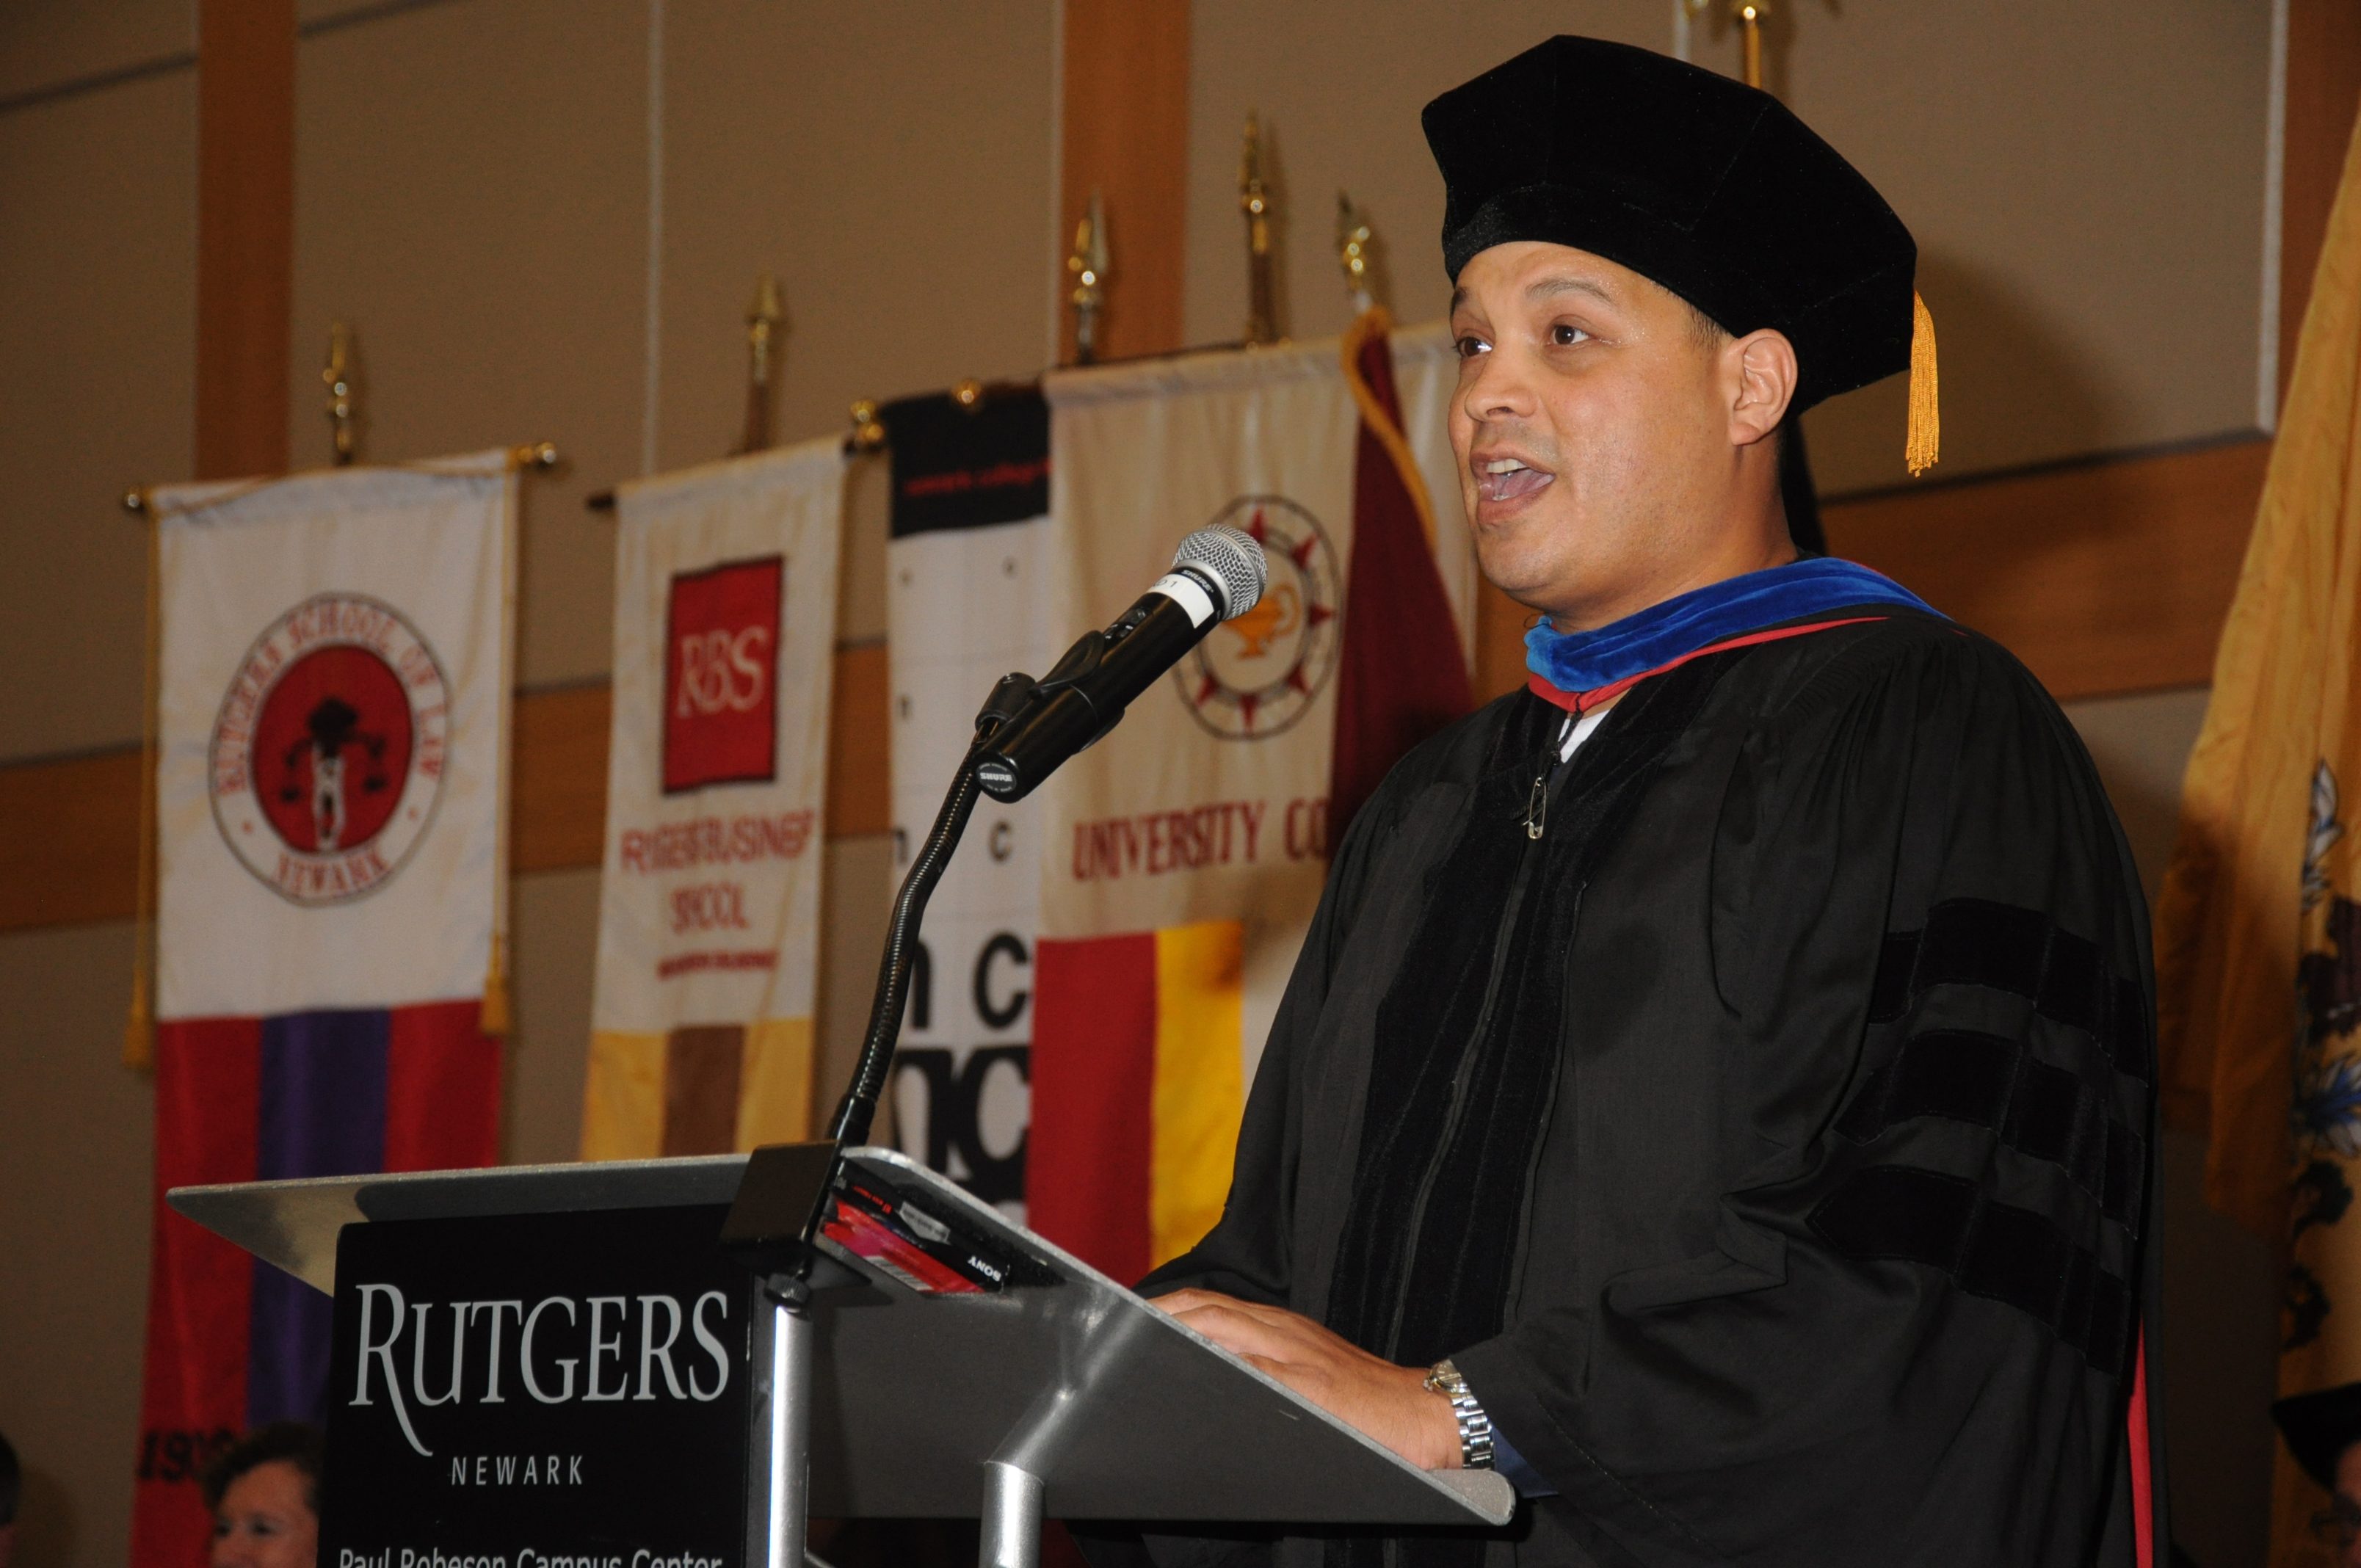 rutgers university dissertations Master's degree with thesis checklist upload and submit your thesis to rutgers electronic theses and dissertations rutgers, the state university of.